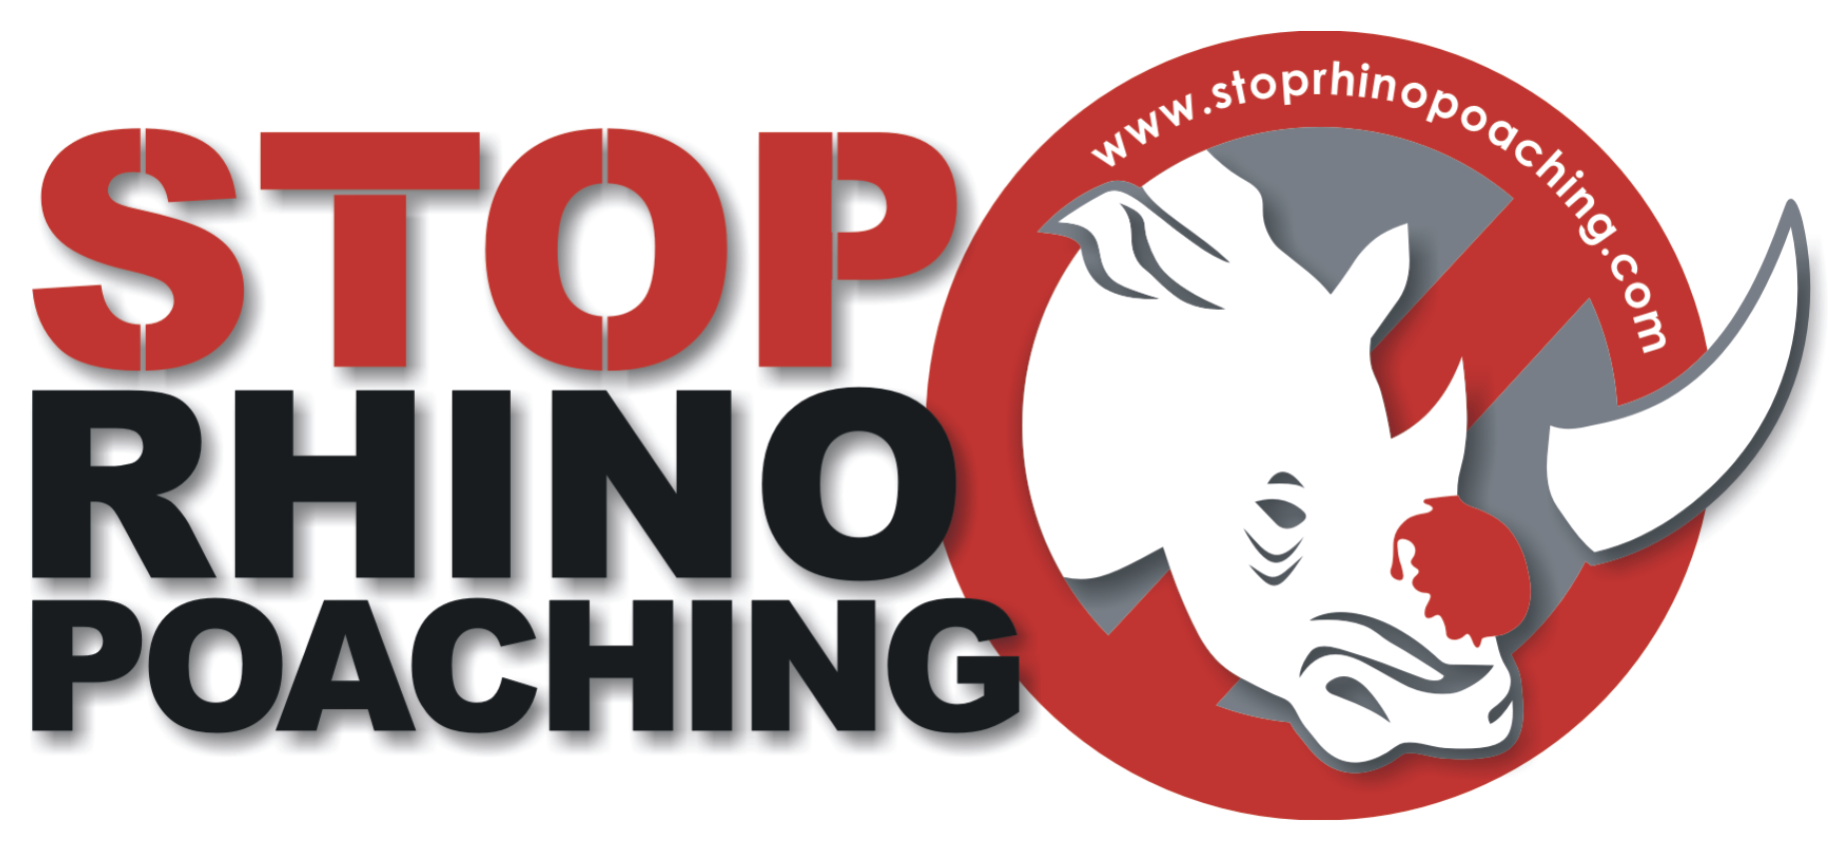 StopRhinoPoachingPetition.png